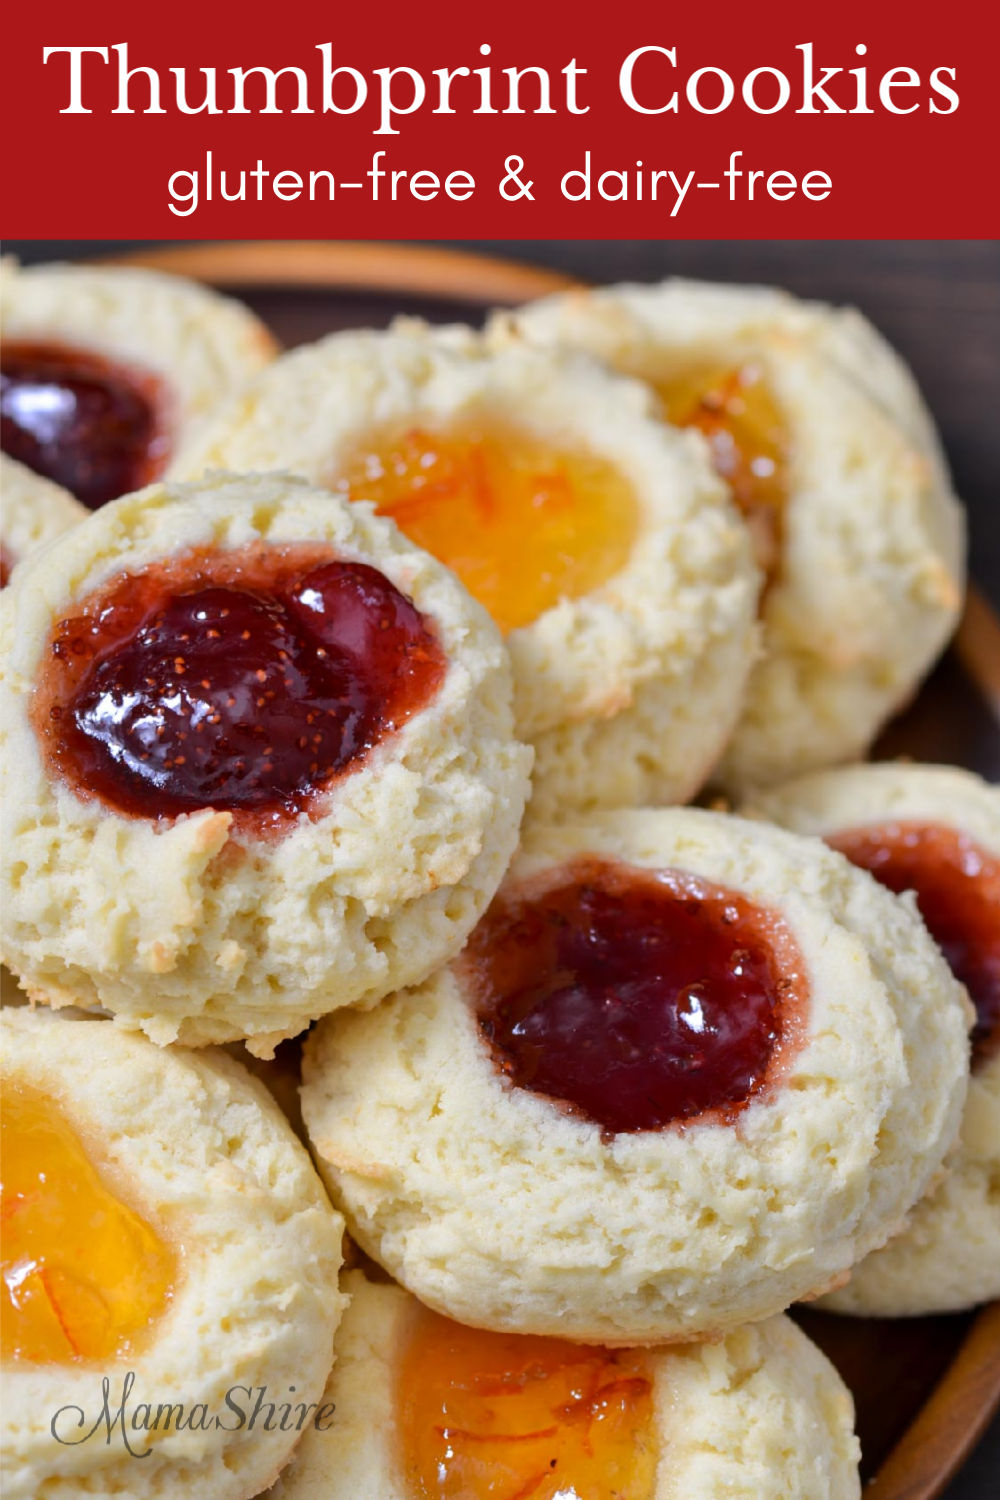 A closeup of gluten-free thumbprint cookies with orange marmalade and strawberry jam.